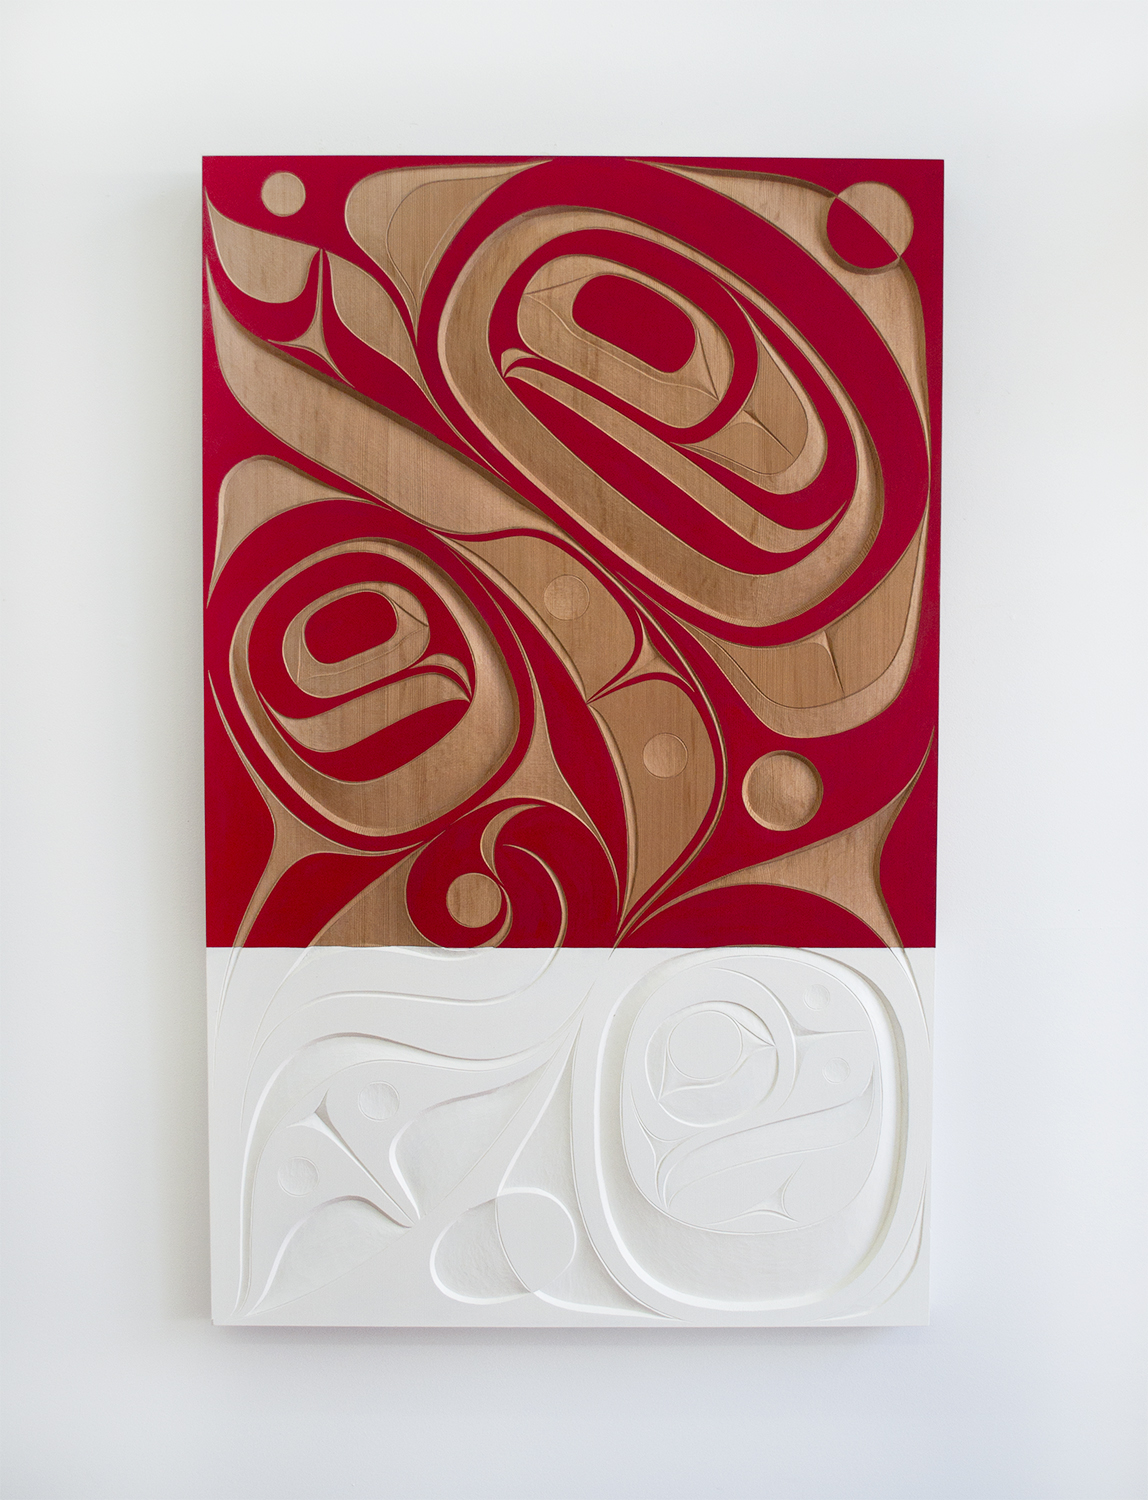 "Our Home, 2018, Rande Cook (Kwakwaka'wakw), Red cedar, acrylic, 48"" x 30"" x 2"", SOLD"